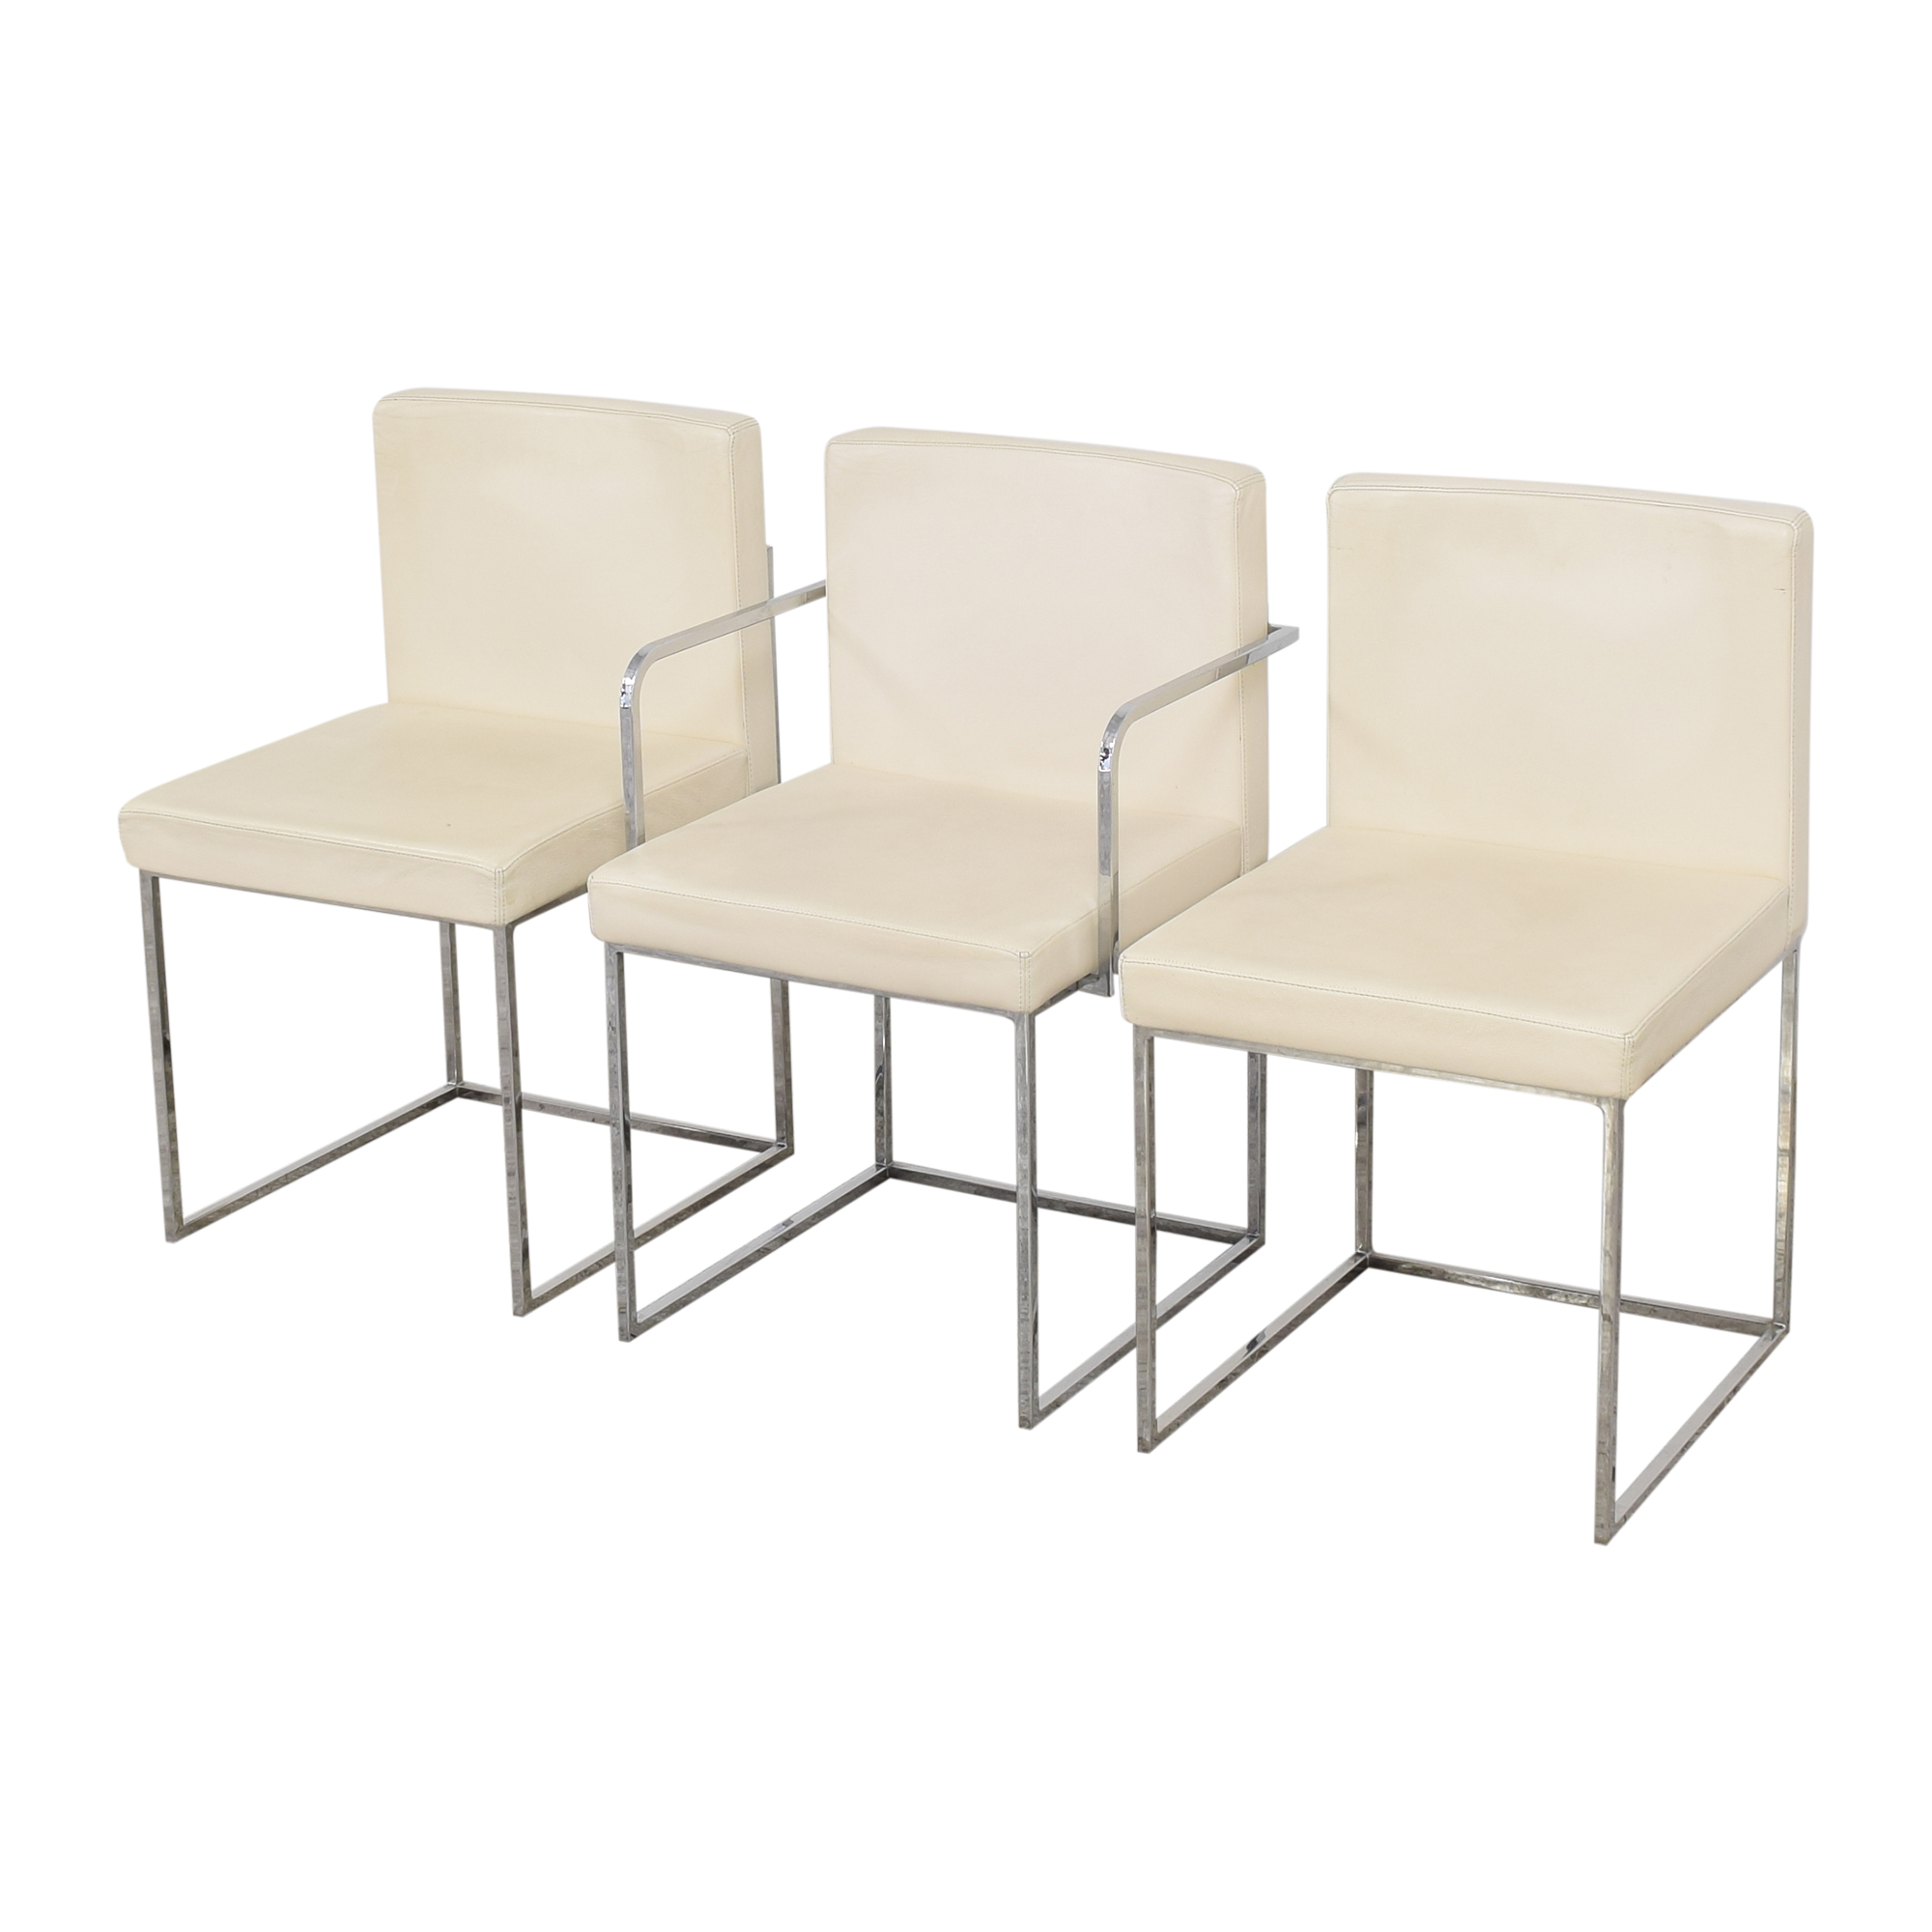 shop Calligaris Even Plus Chairs Calligaris Chairs